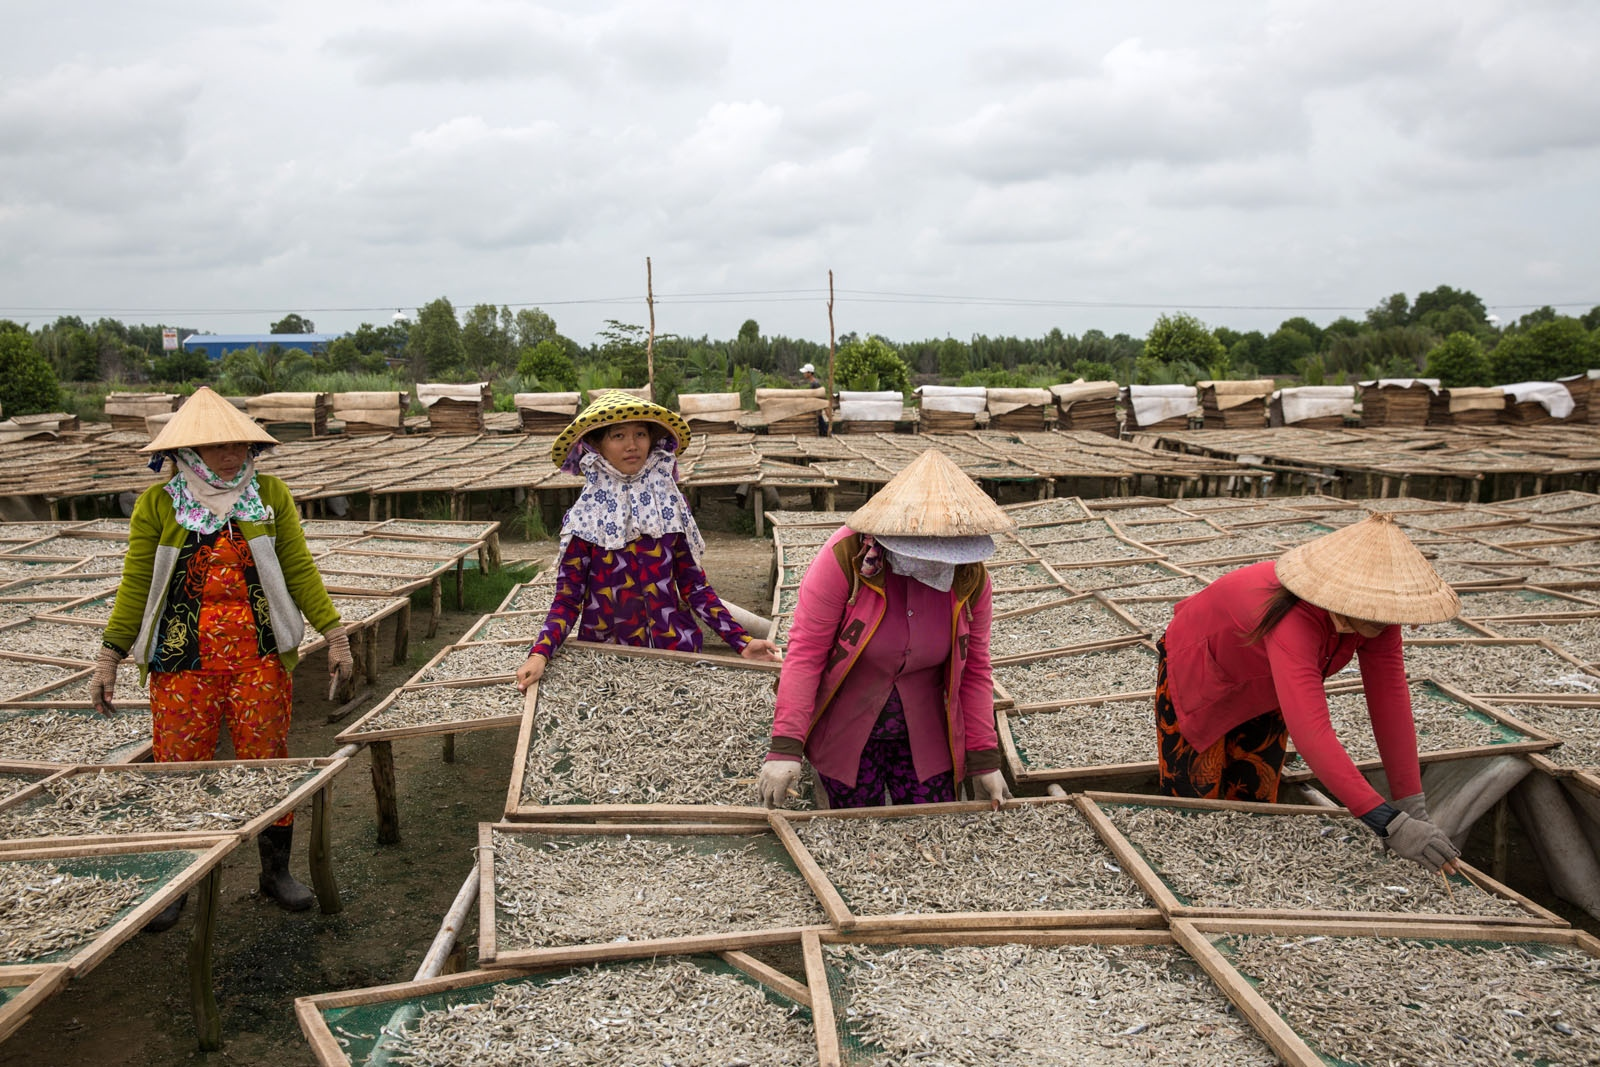 Women workers spread out fish to dry in the sun at the Vinh Nghi factory at the edge of Song Doc town. The factory dries 60 tons of fish every-day and employs 140 workers. Sandwiched between the Song Doc River and the Gulf of Thailand, this bustling town of 50,000 people relies heavily on the fishing industry. Virtually all of these dried fish prepared at this factory will be exported to China.